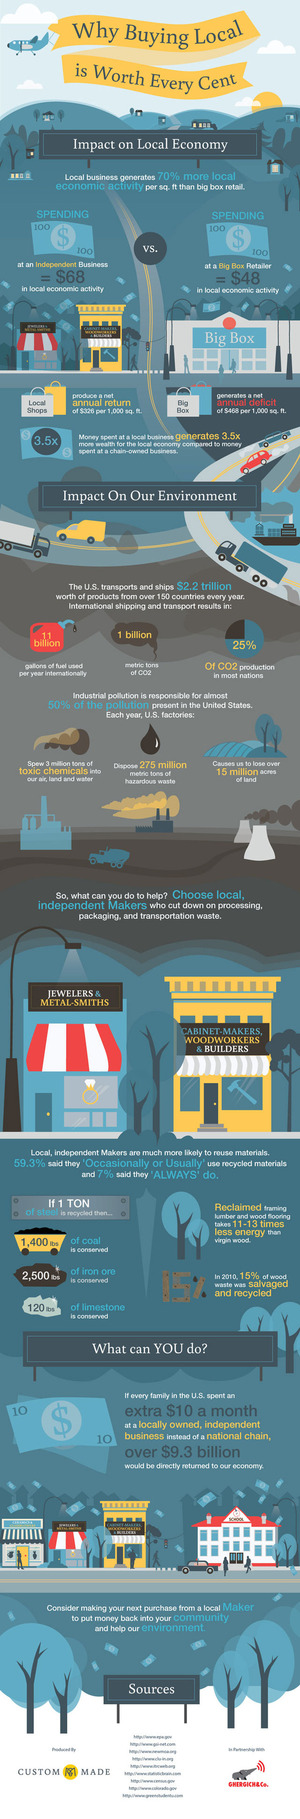 Why Buying Local is Worth Every Cent [INFOGRAPHIC] | Sustainable Cities Collective